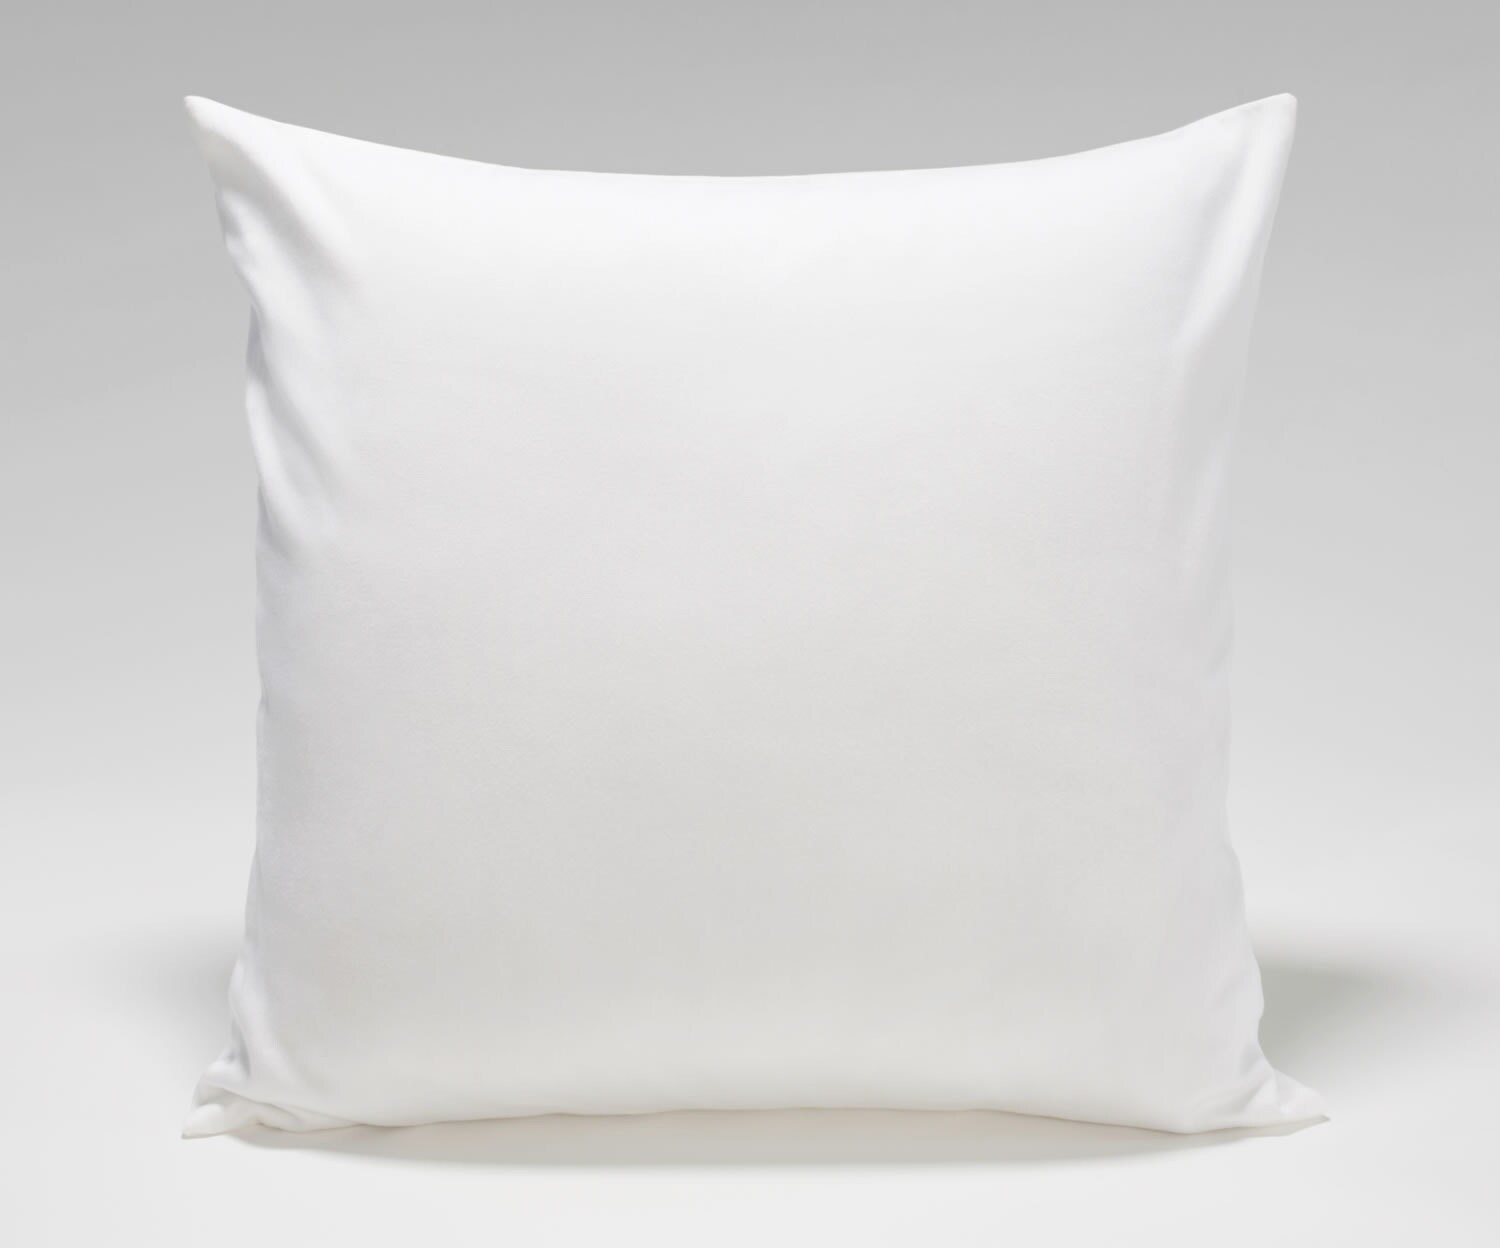 Solid White Cotton Pillow Cover In 20 Sizes BESTSELLER